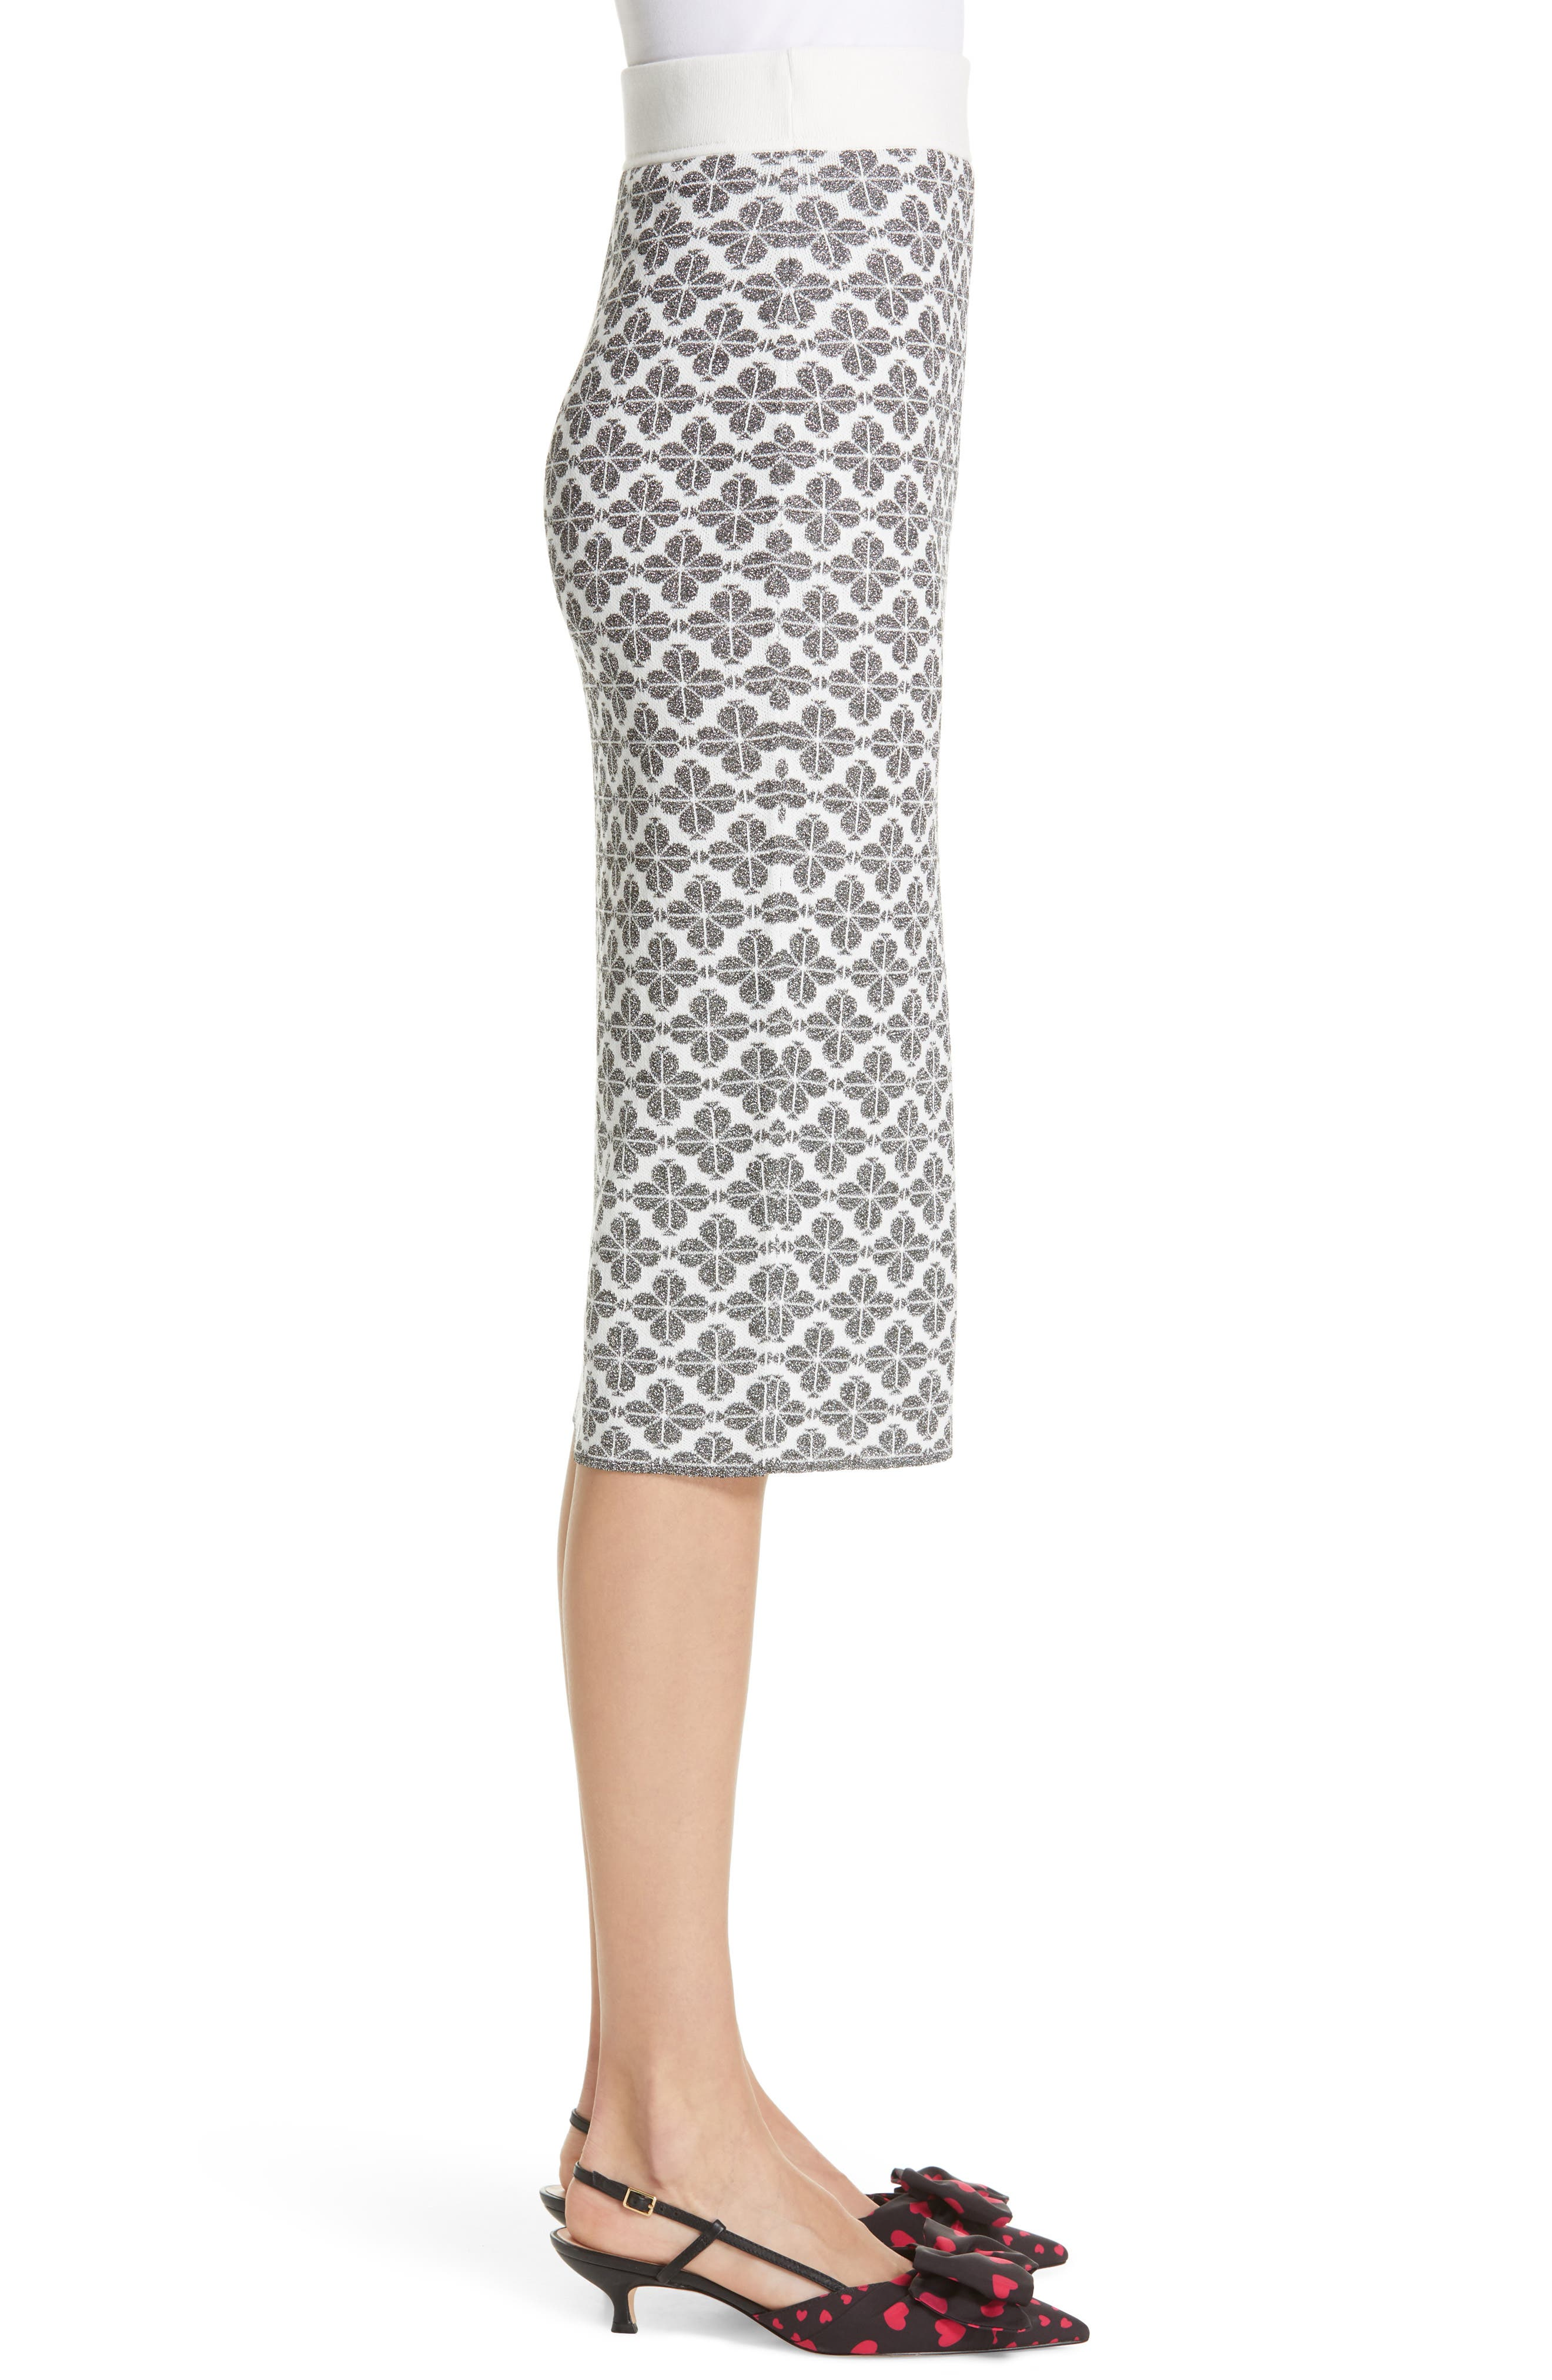 KATE SPADE NEW YORK,                             floral spade knit pencil skirt,                             Alternate thumbnail 3, color,                             BLACK